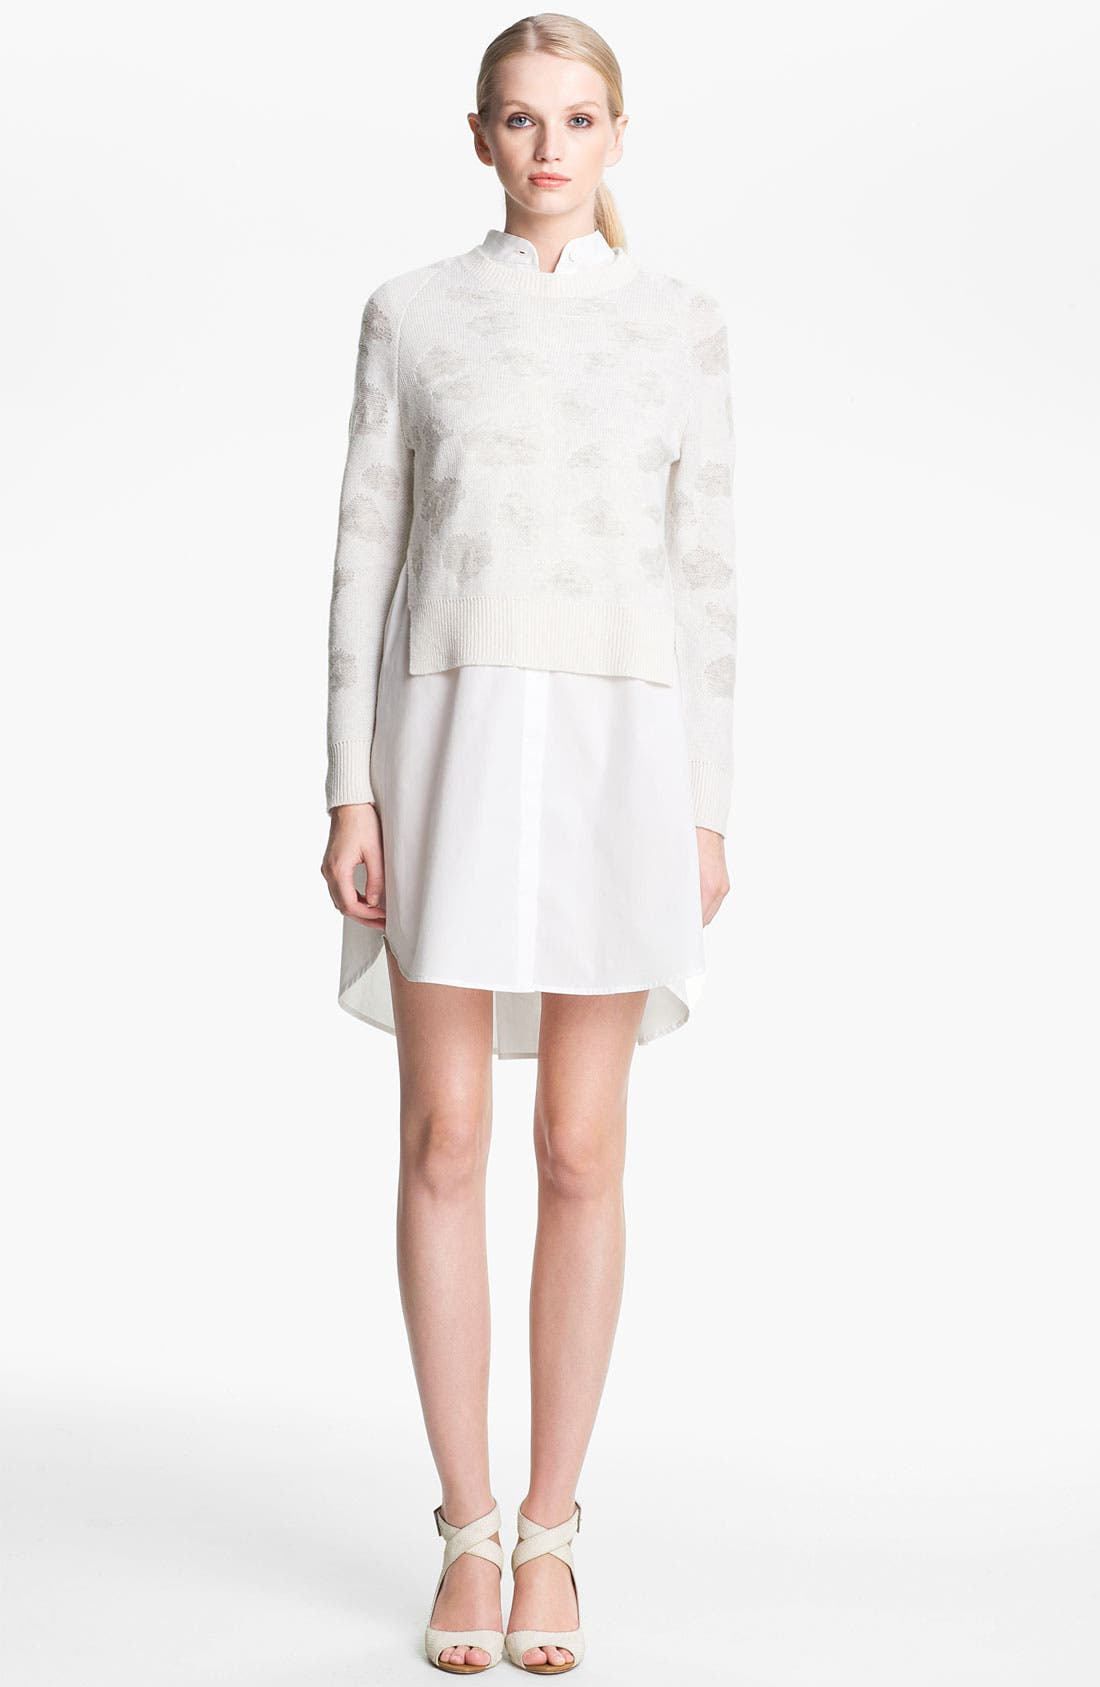 Main Image - 3.1 Phillip Lim Layered Dress